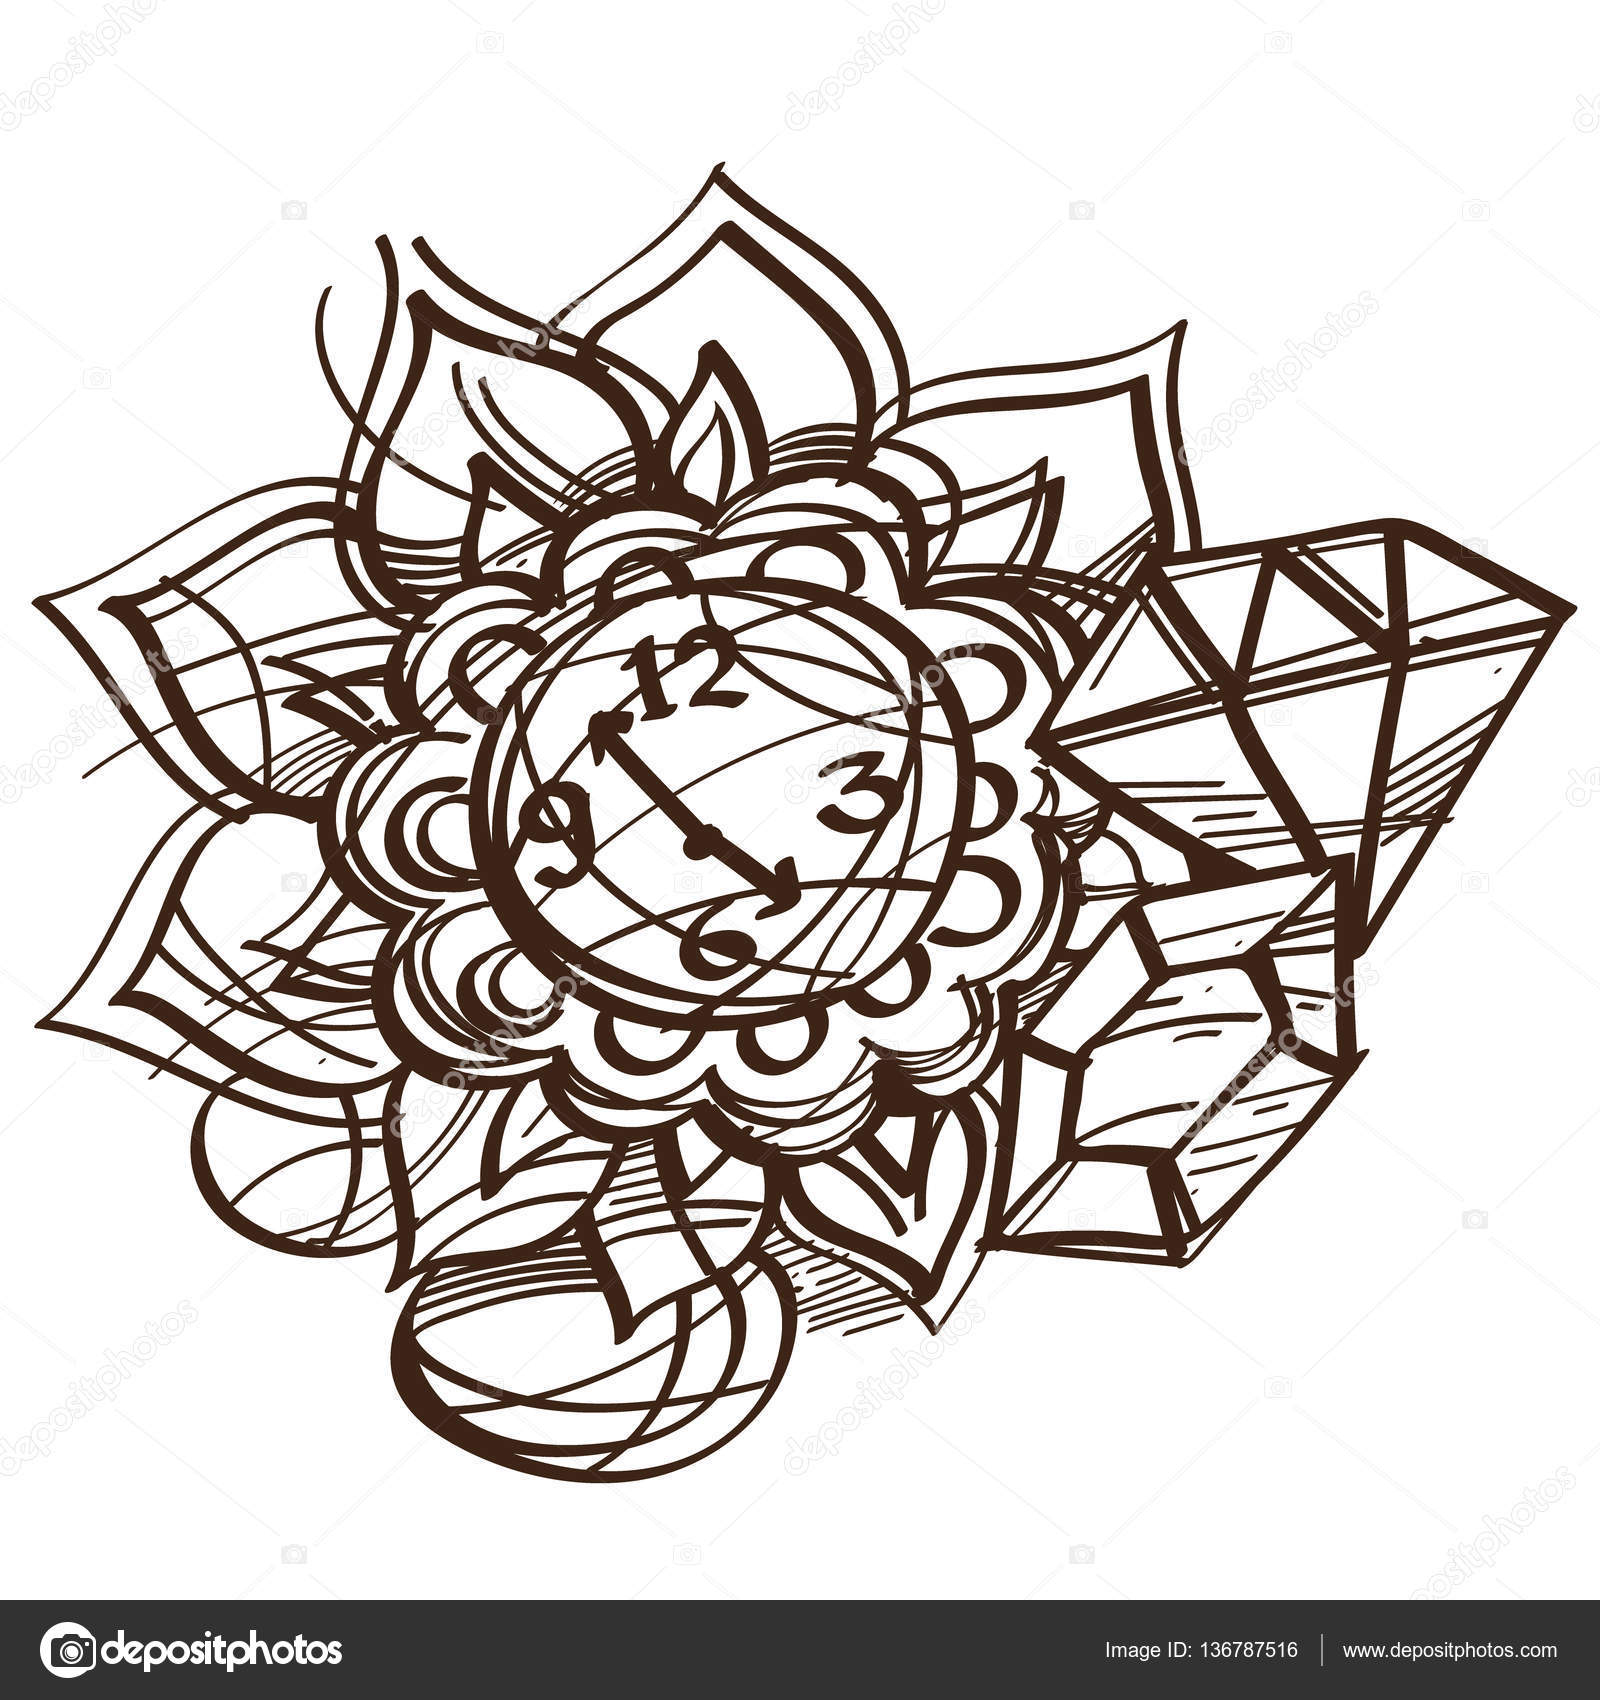 Áˆ Pocket Watch Drawing Stock Drawings Royalty Free Pocket Watch Sketch Vectors Download On Depositphotos Are you searching for pocket watch png images or vector? https depositphotos com 136787516 stock illustration fairy pocket watch black and html